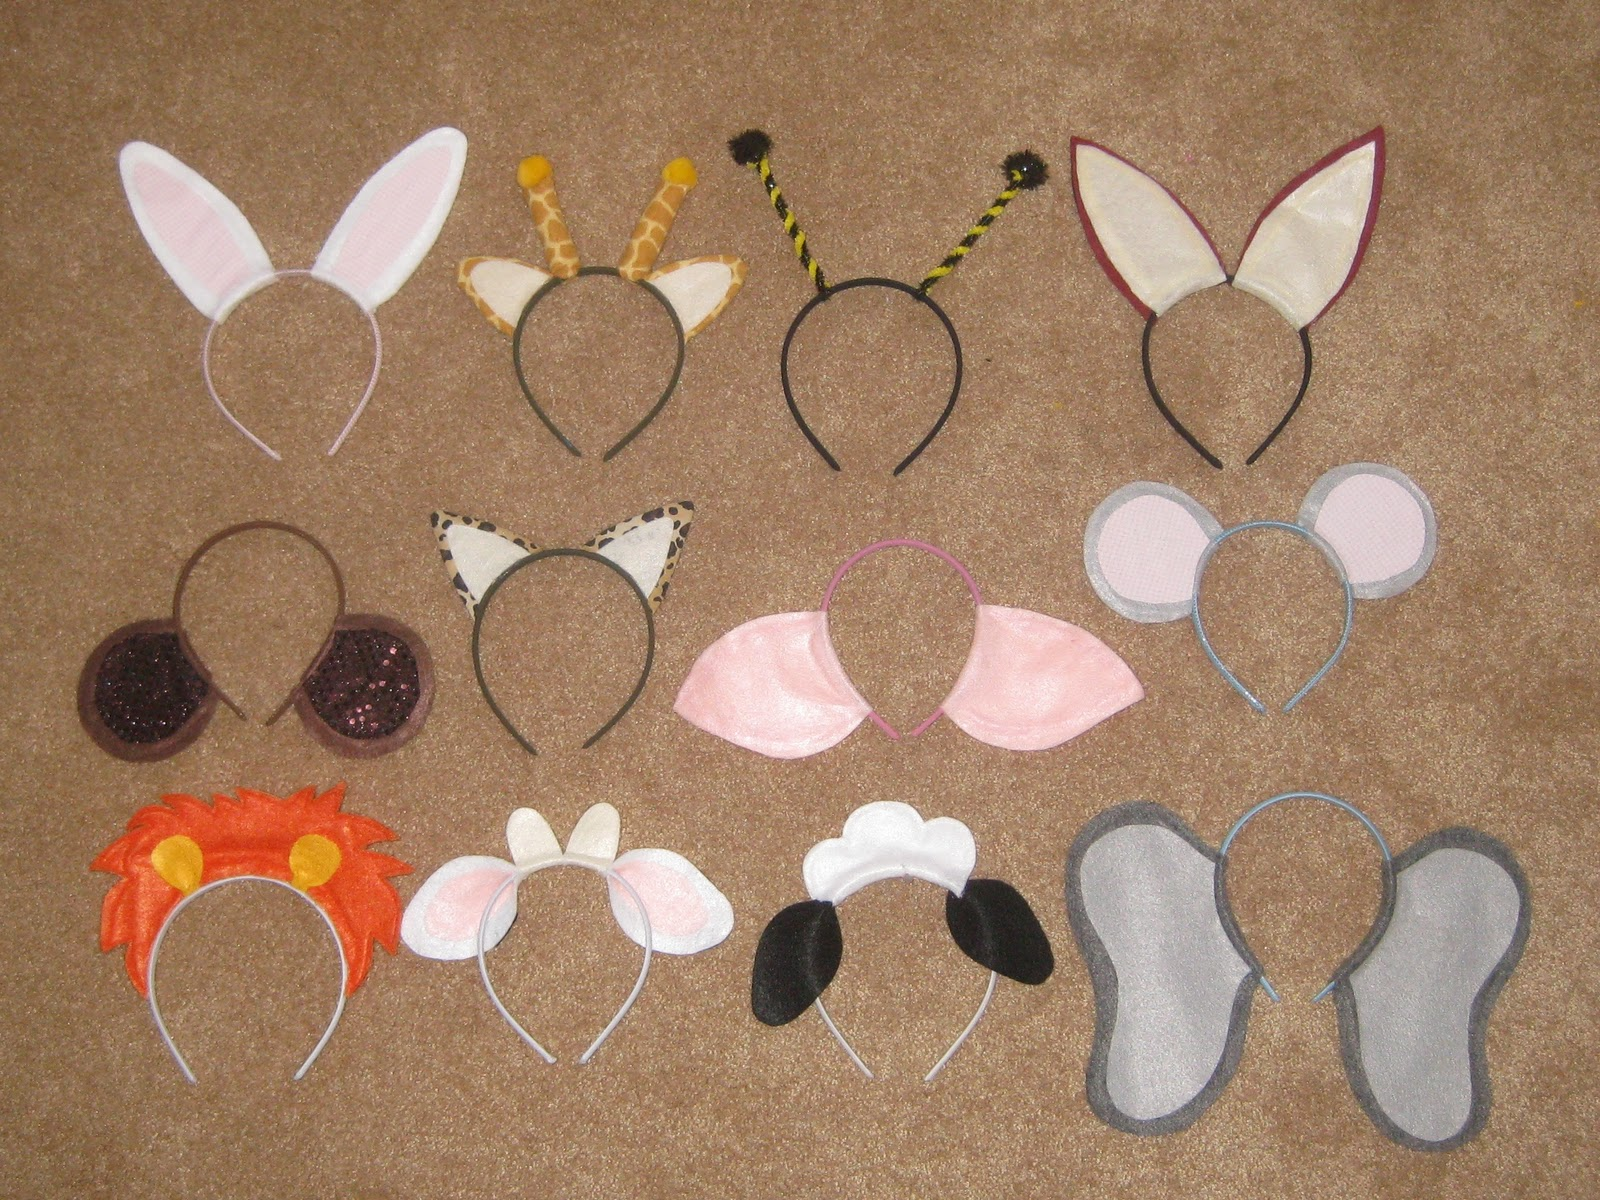 Ashleys craft corner animal ears headbands from left to right and top to bottom bunny giraffe bee fox monkey jaguar pig mouse lion cow sheep elephant some of the ears might seem really pronofoot35fo Images